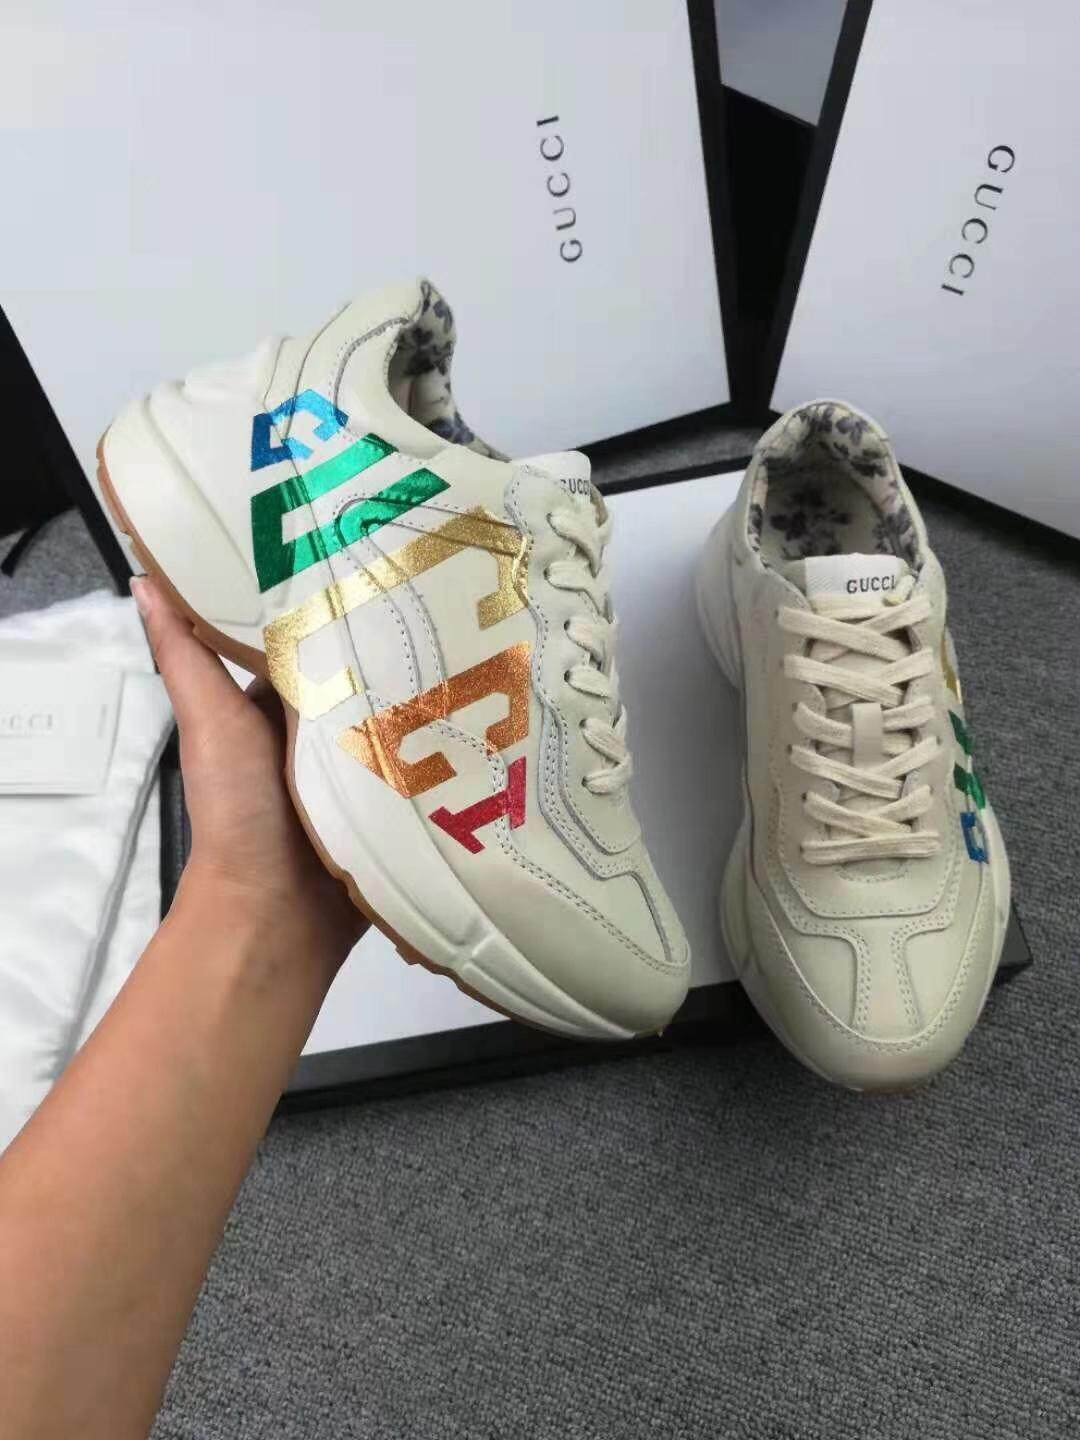 3217b060d71 Gucci shoes Gucci shoes G rainbow letters women s shoes small bee shoes  men s shoes do old